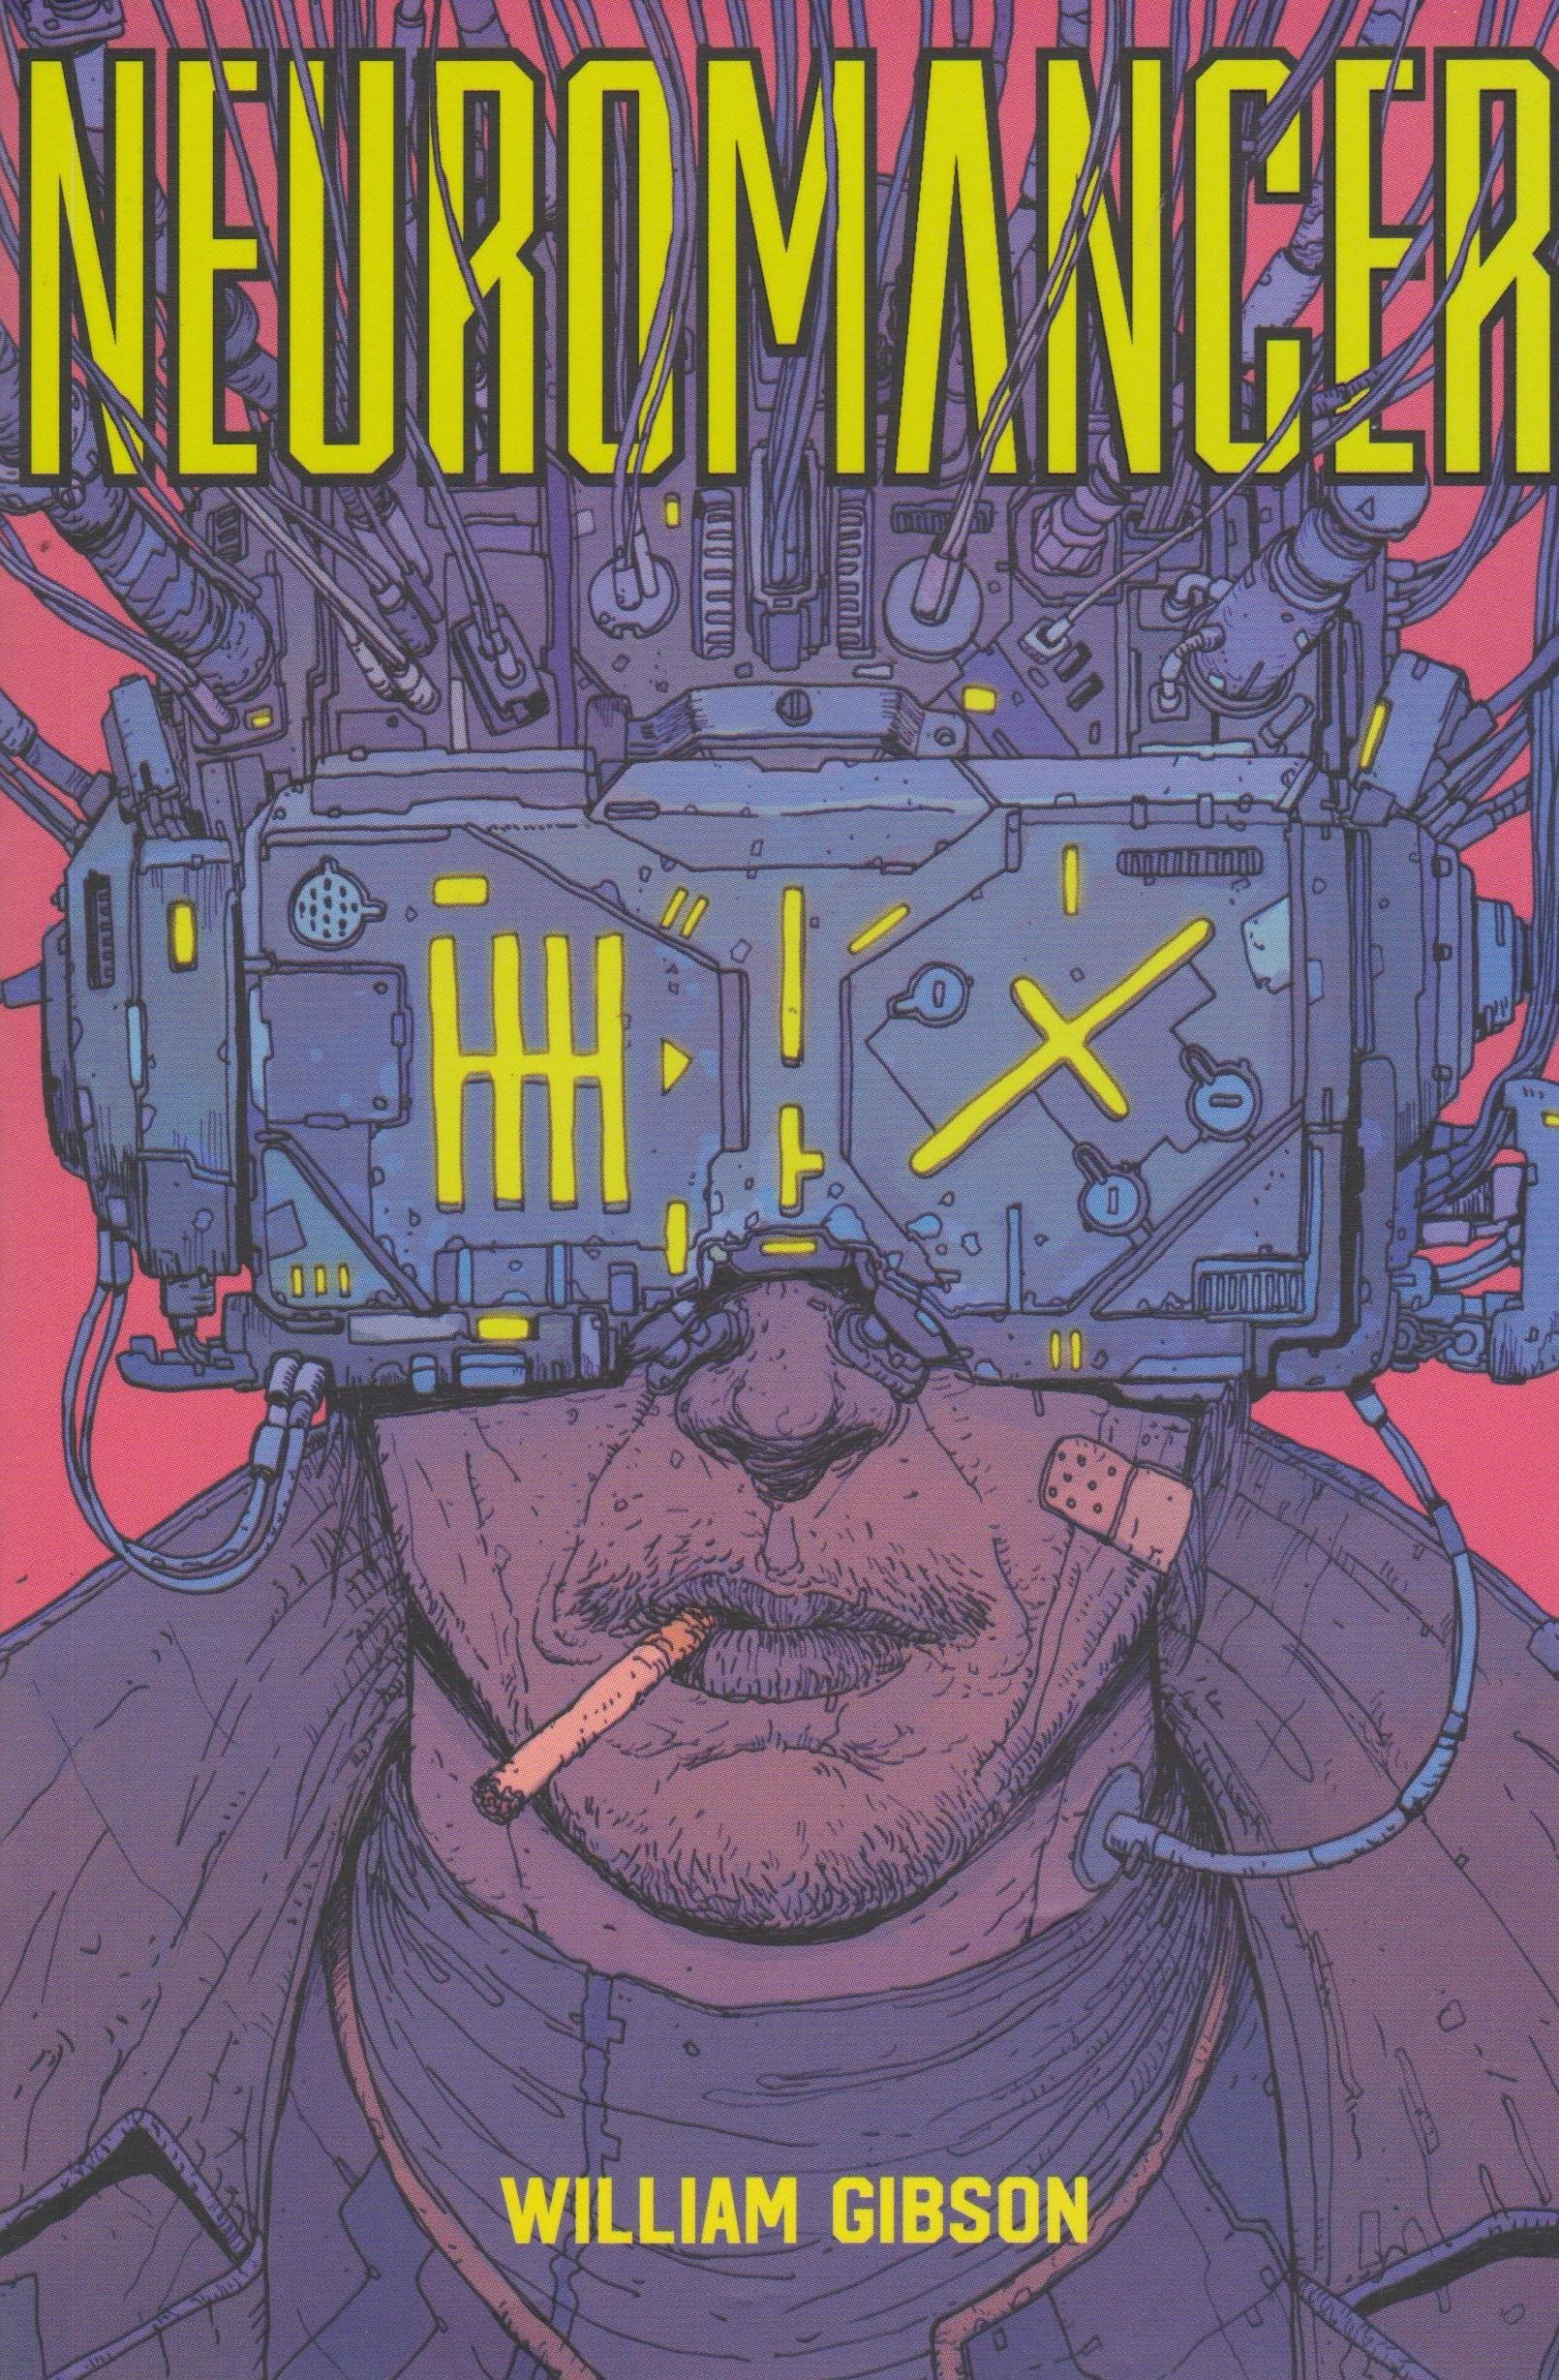 """29) Neuromancer - The first novel to ever win the Nebula Award, Philip K. Dick Award, and the Hugo Award in the same year, William Gibson's 1984 Neuromancer is the cornerstone of the cyberpunk genre. Truth be told, it's an even more important book than that, and its influence can still be felt in pop culture today. Essentially coining terms like """"cyberspace"""" and """"the matrix,"""" Neuromancer tells a metaphysically transcendental yet relatable science fiction story about individuals lost in a world of godlike artificial intelligence, unchecked capitalism, and apathetic political stagnation. It also has one of the best opening lines ever, immediately setting the tone for the novel: """"The sky above the port was the color of television, tuned to a dead channel."""""""